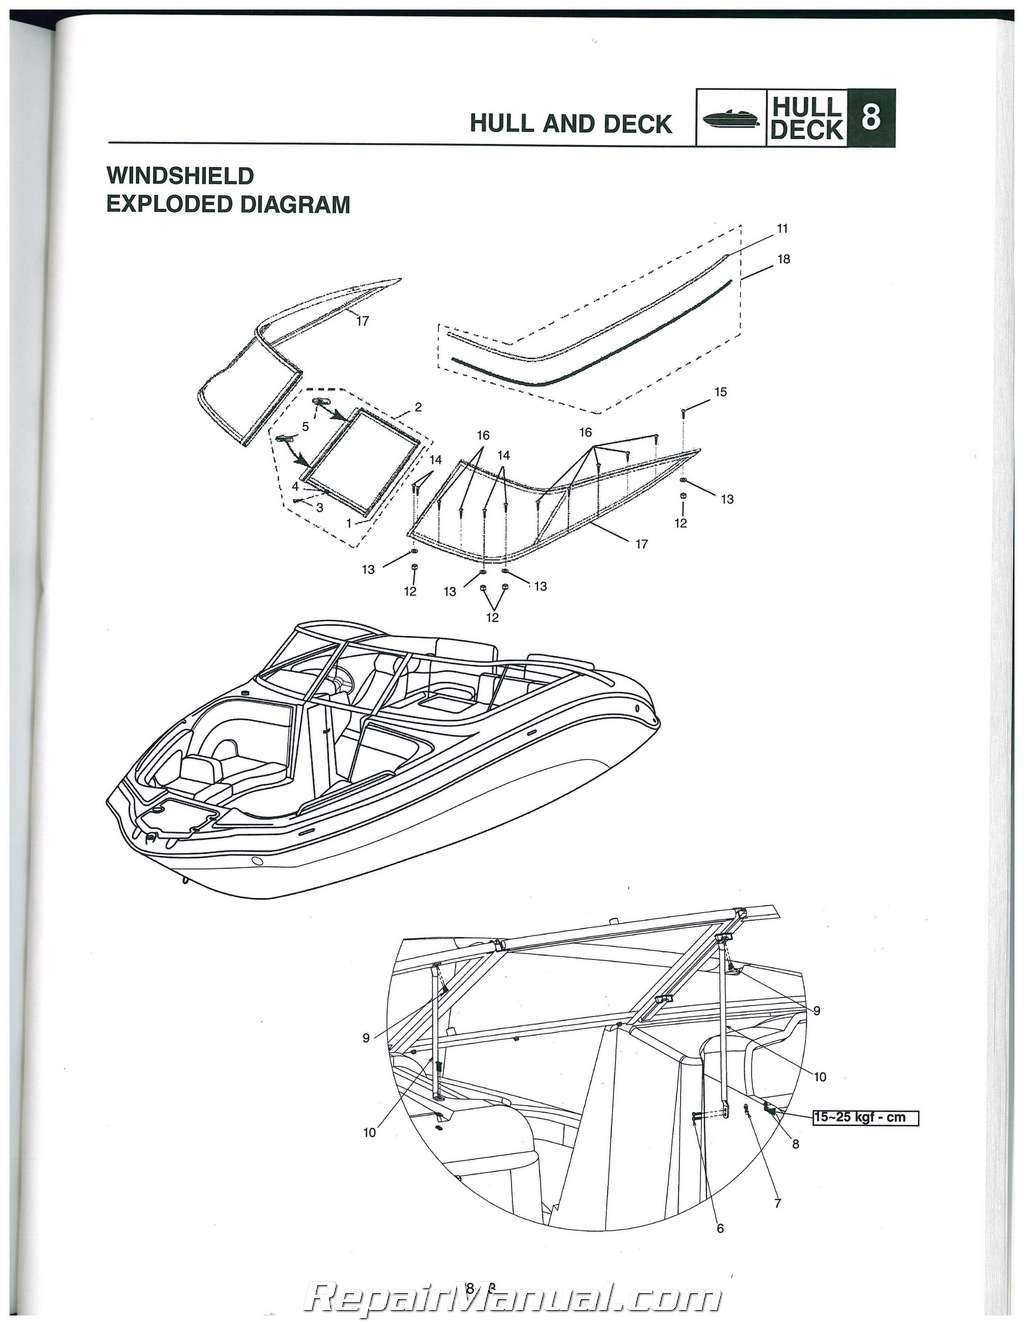 2010-2011 Yamaha SXT1800 242 Limited S AR240 SX240 High Output Sport Boat Service Manual